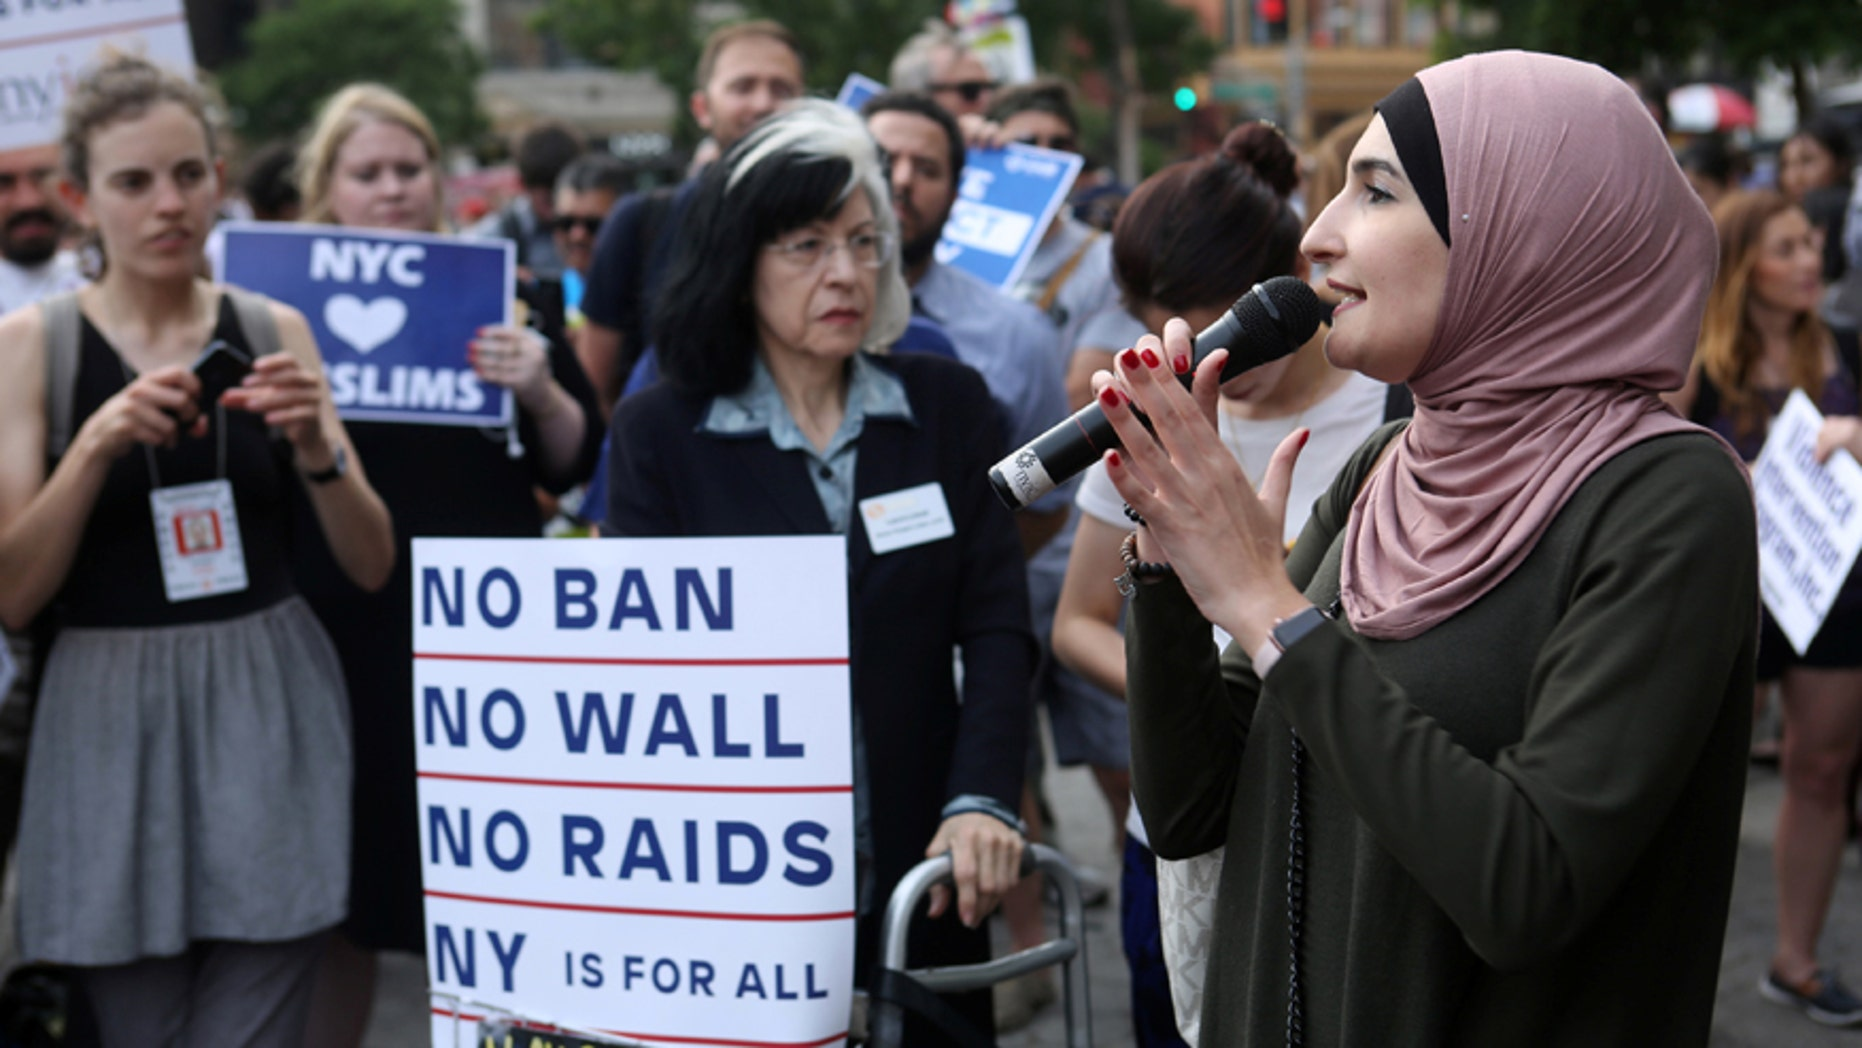 Activist Linda Sarsour speaks at a protest against U.S. President Donald Trump's limited travel ban, approved by the U.S. Supreme Court, in New York City, U.S., June 29, 2017. REUTERS/Joe Penney - RTS19726